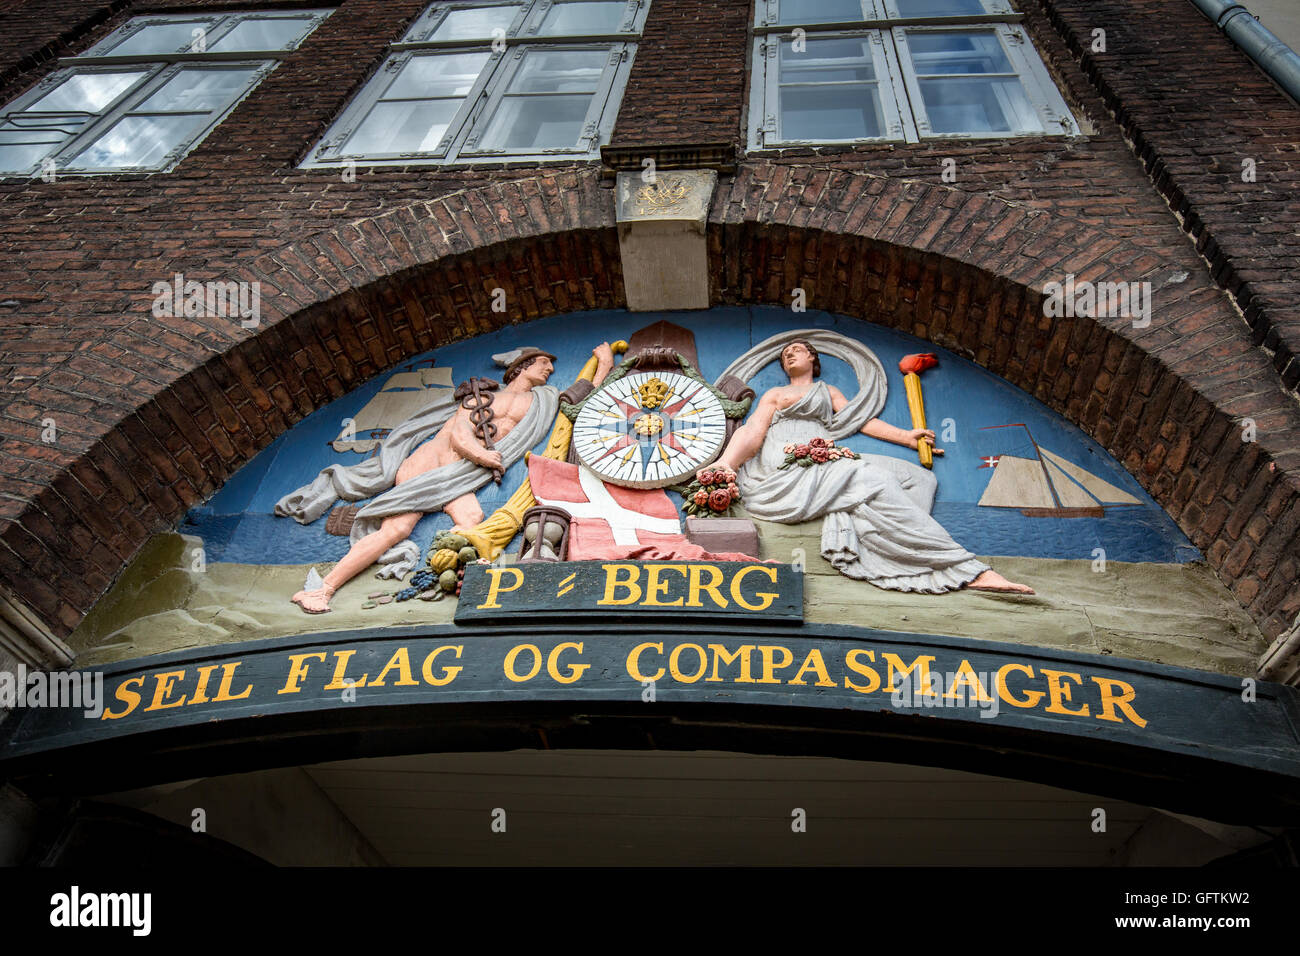 Old sign for a sail, flag and compass maker in Nyhabn, Copenhagen, Denmark - Stock Image